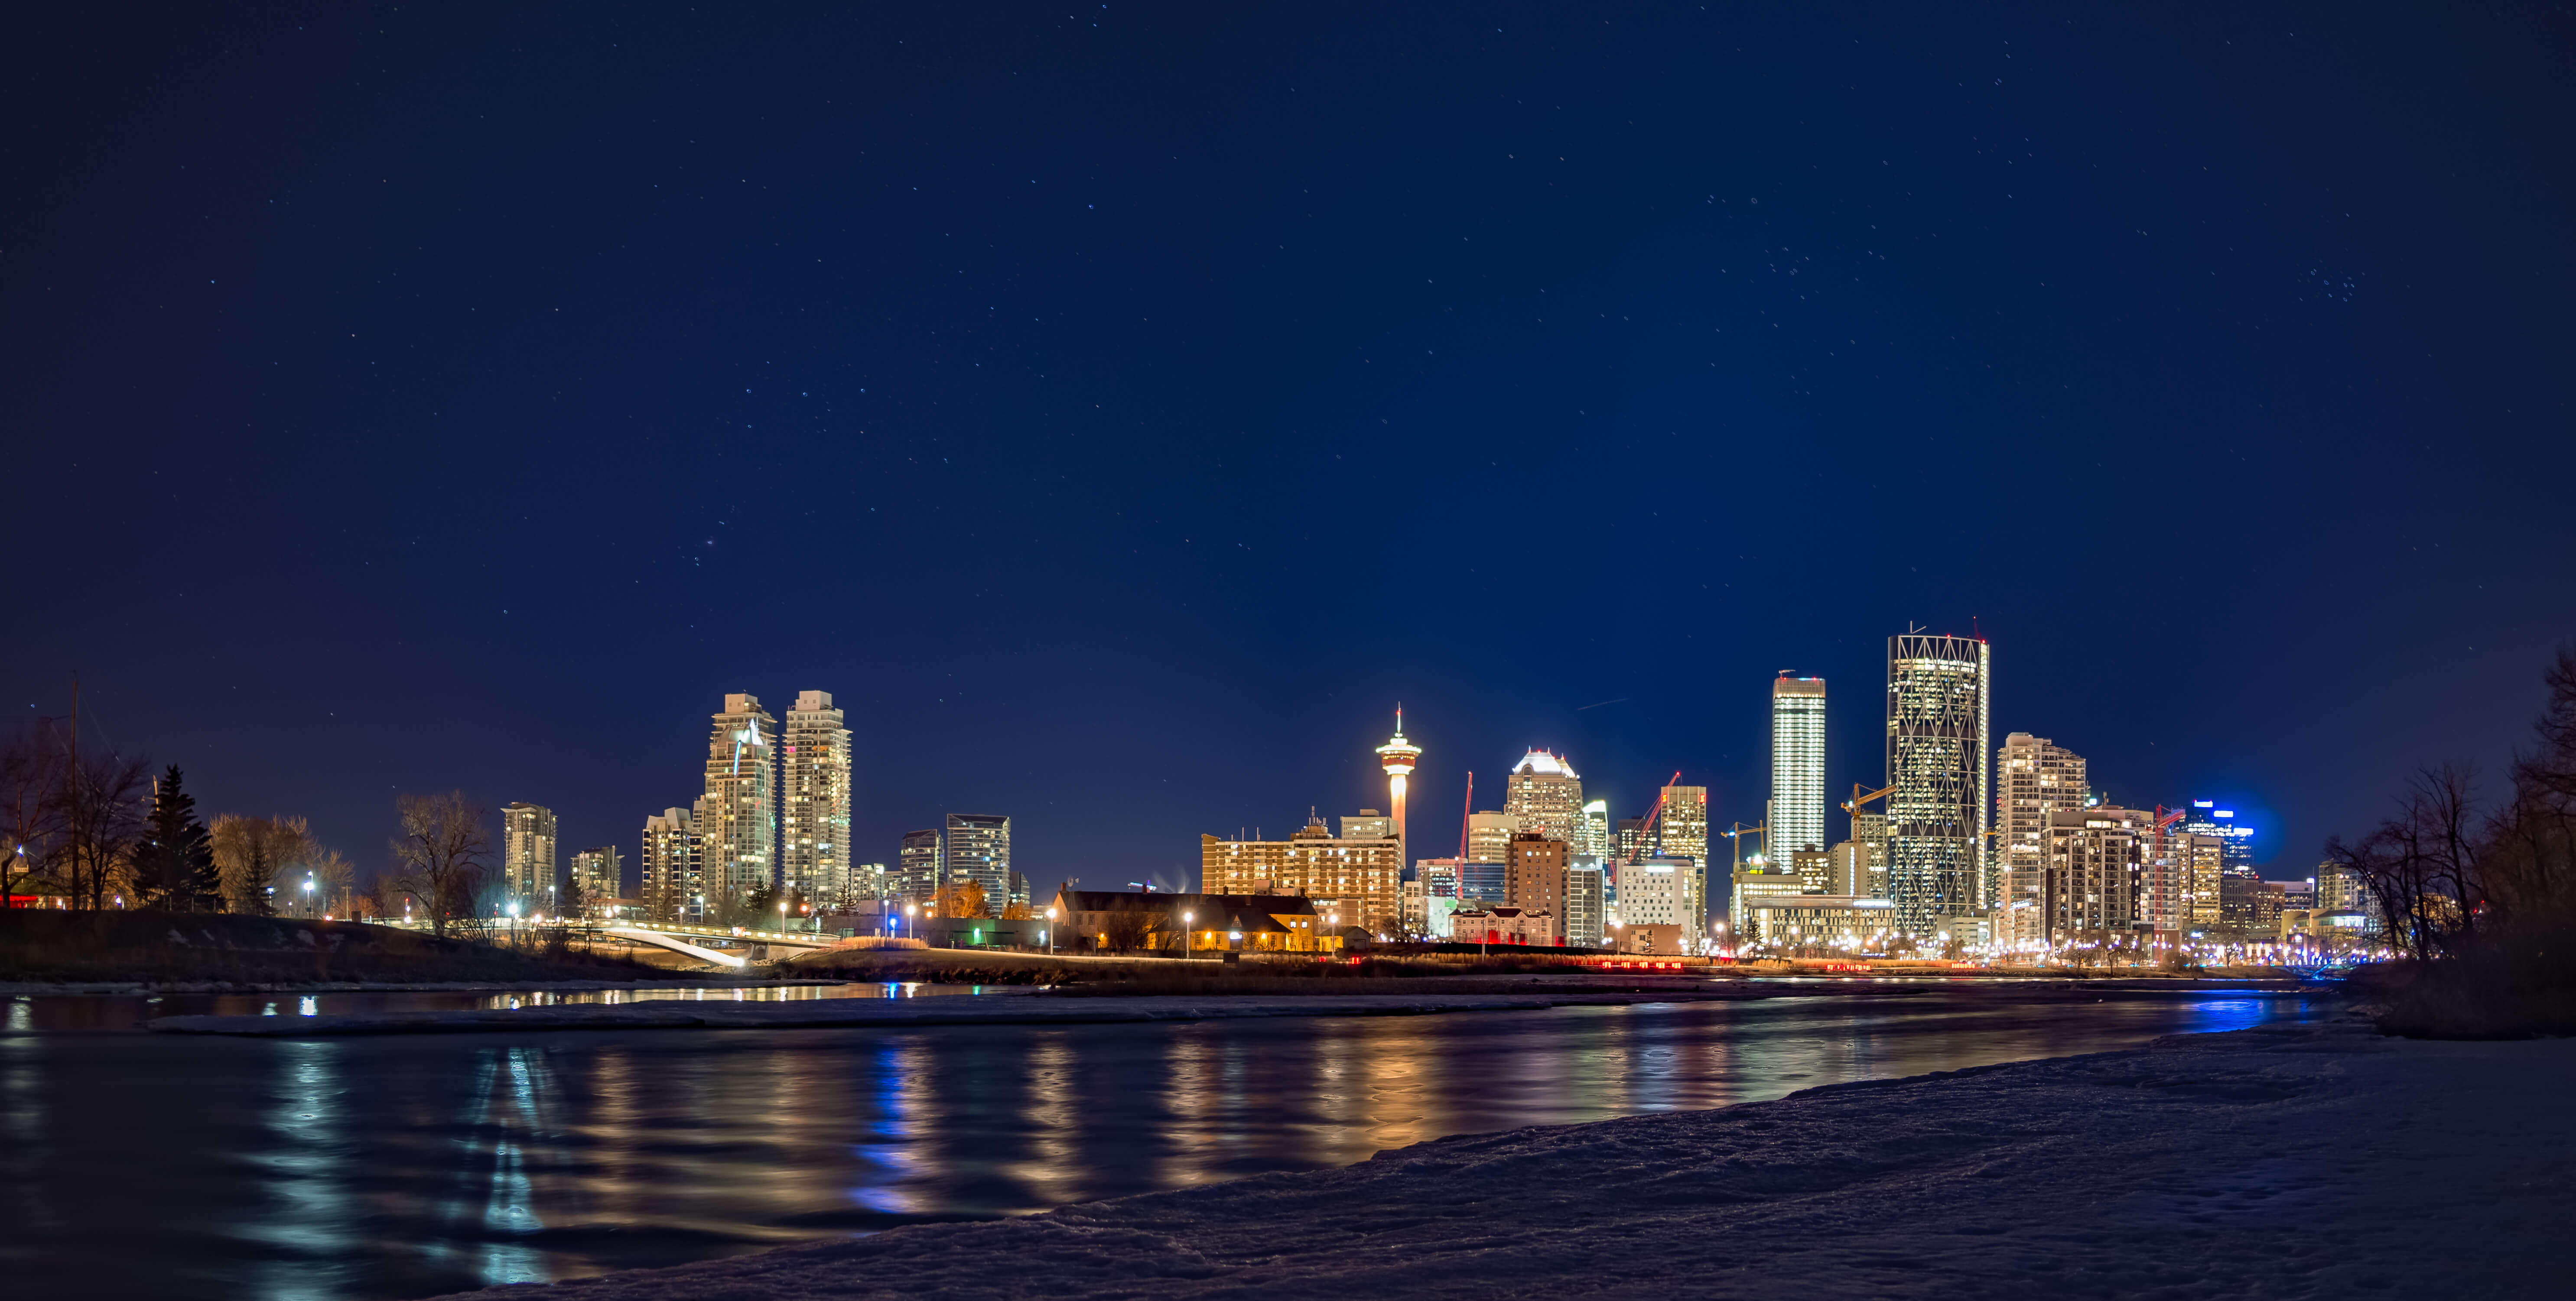 March 25, 2017-P1500522-HDR-Pano